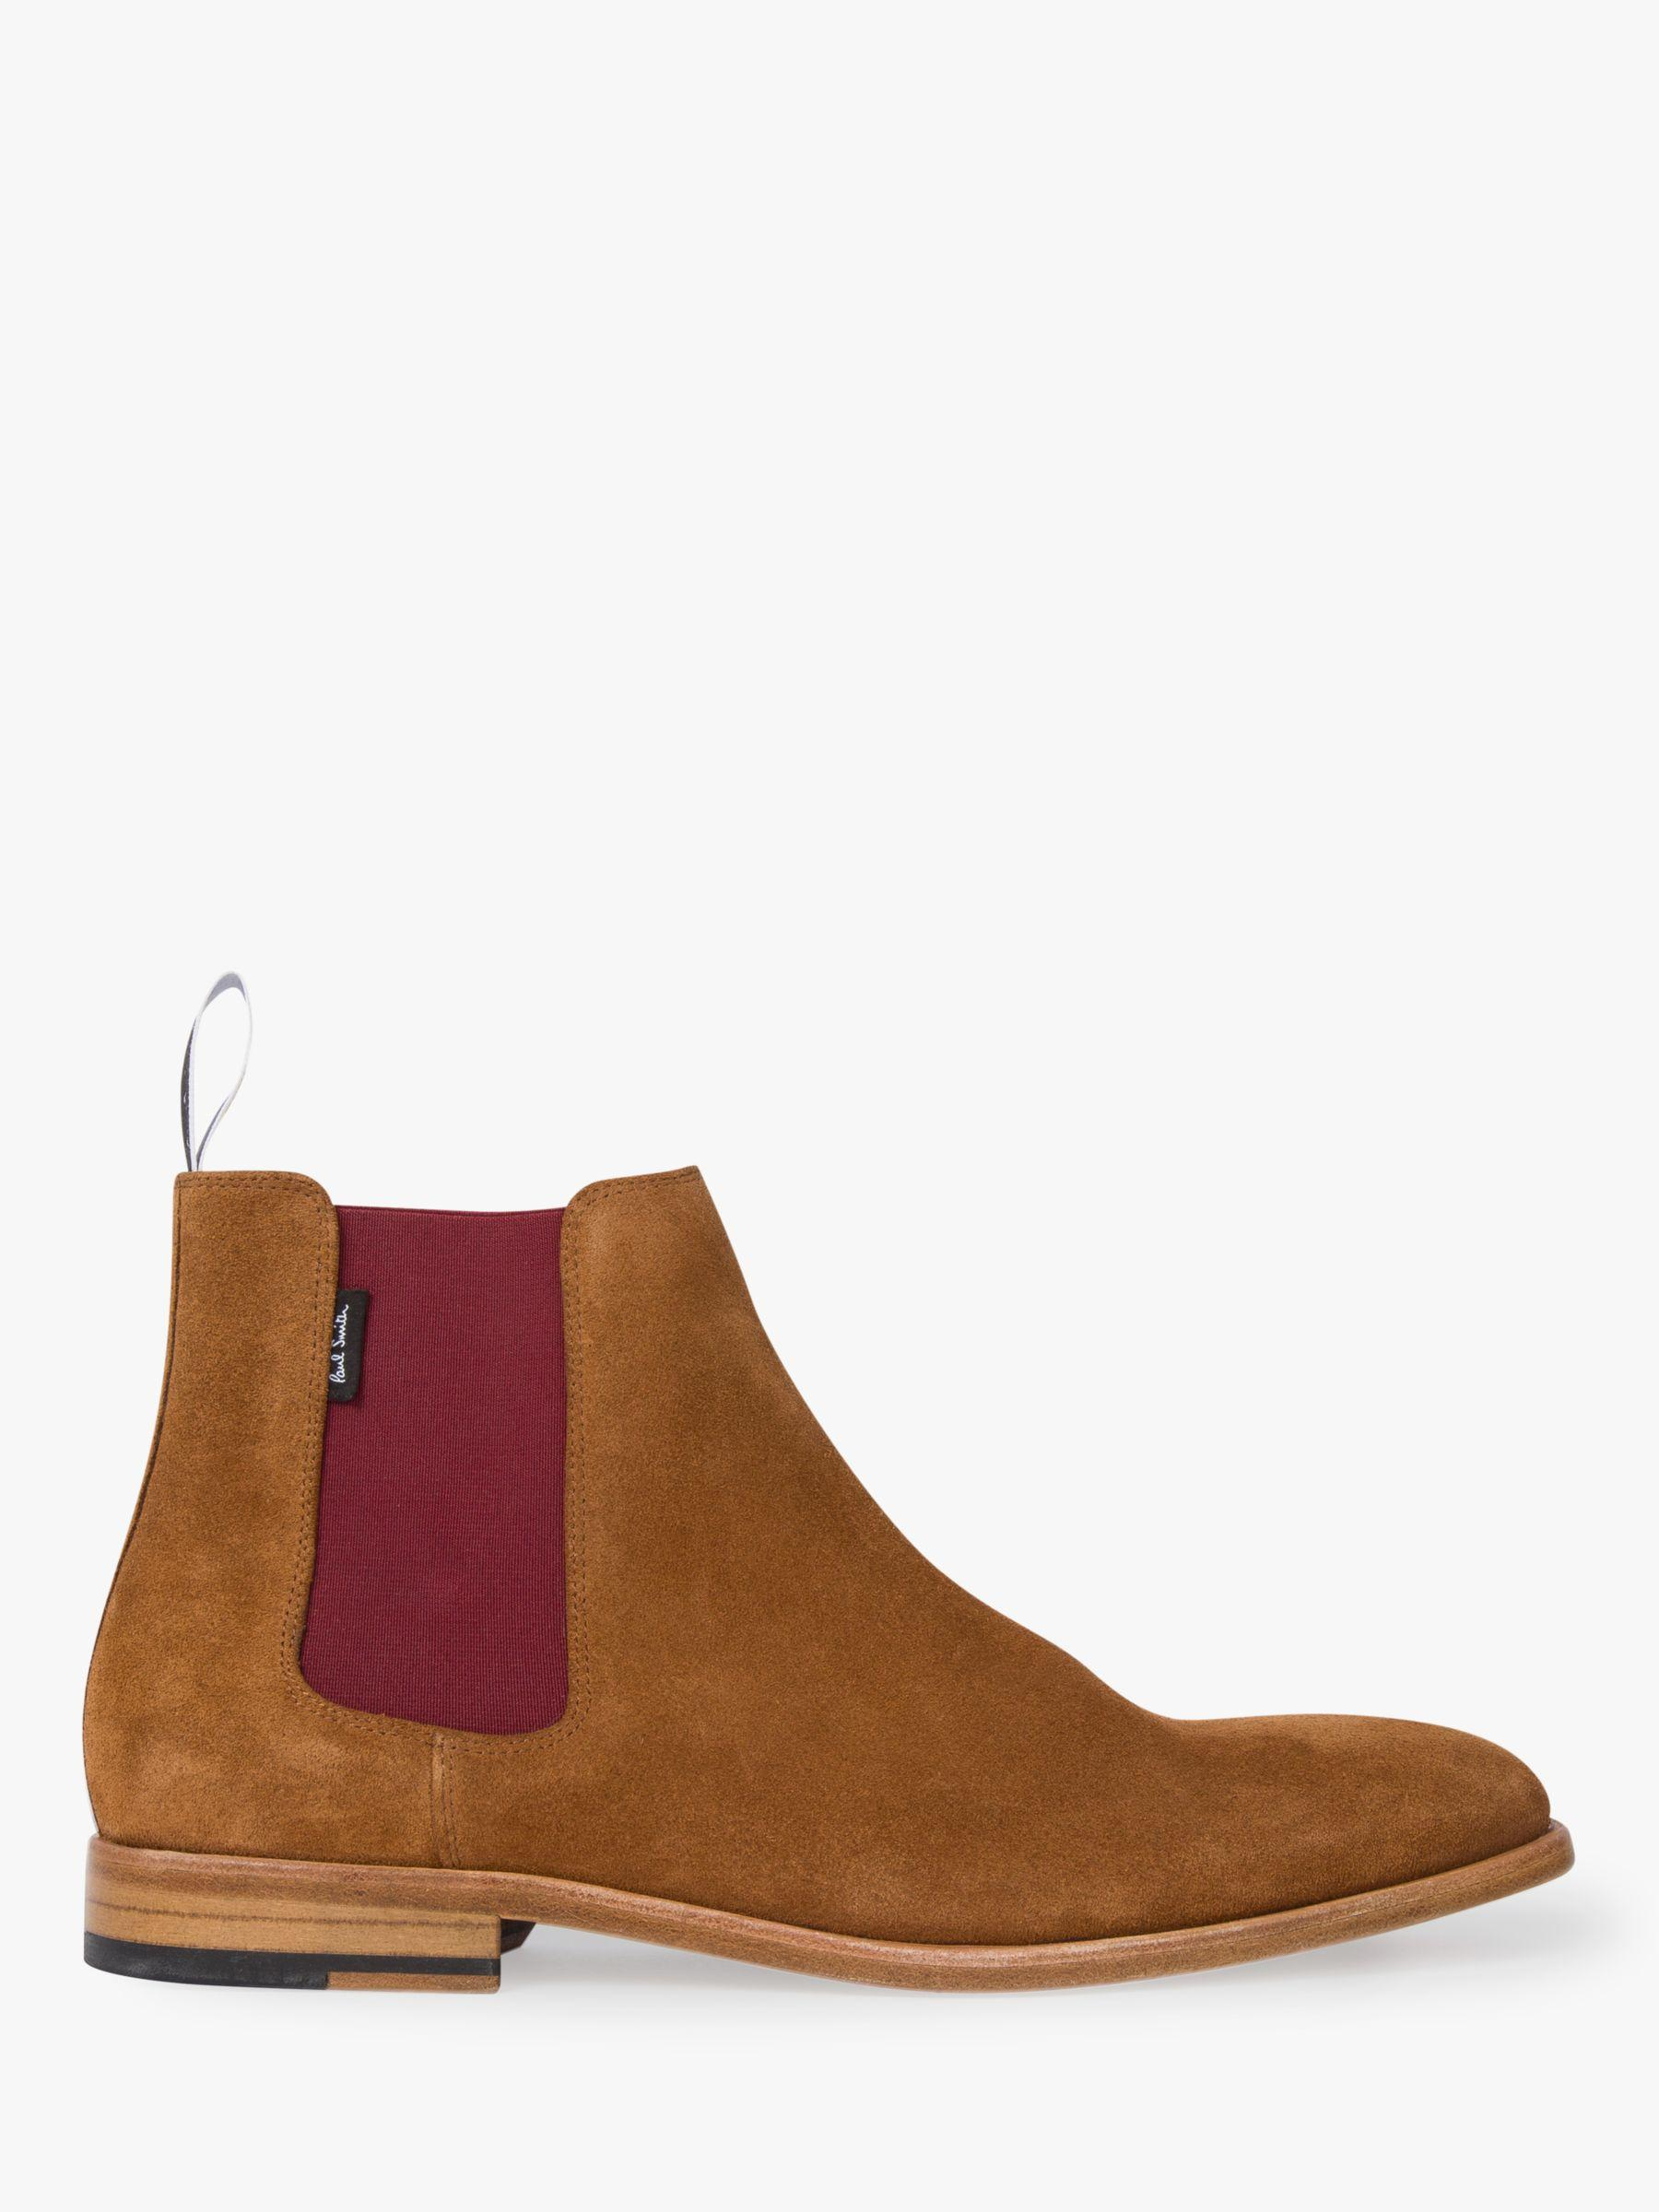 88157b9a75f Paul Smith - Brown Ps Gerald Suede Chelsea Boots for Men - Lyst. View  fullscreen